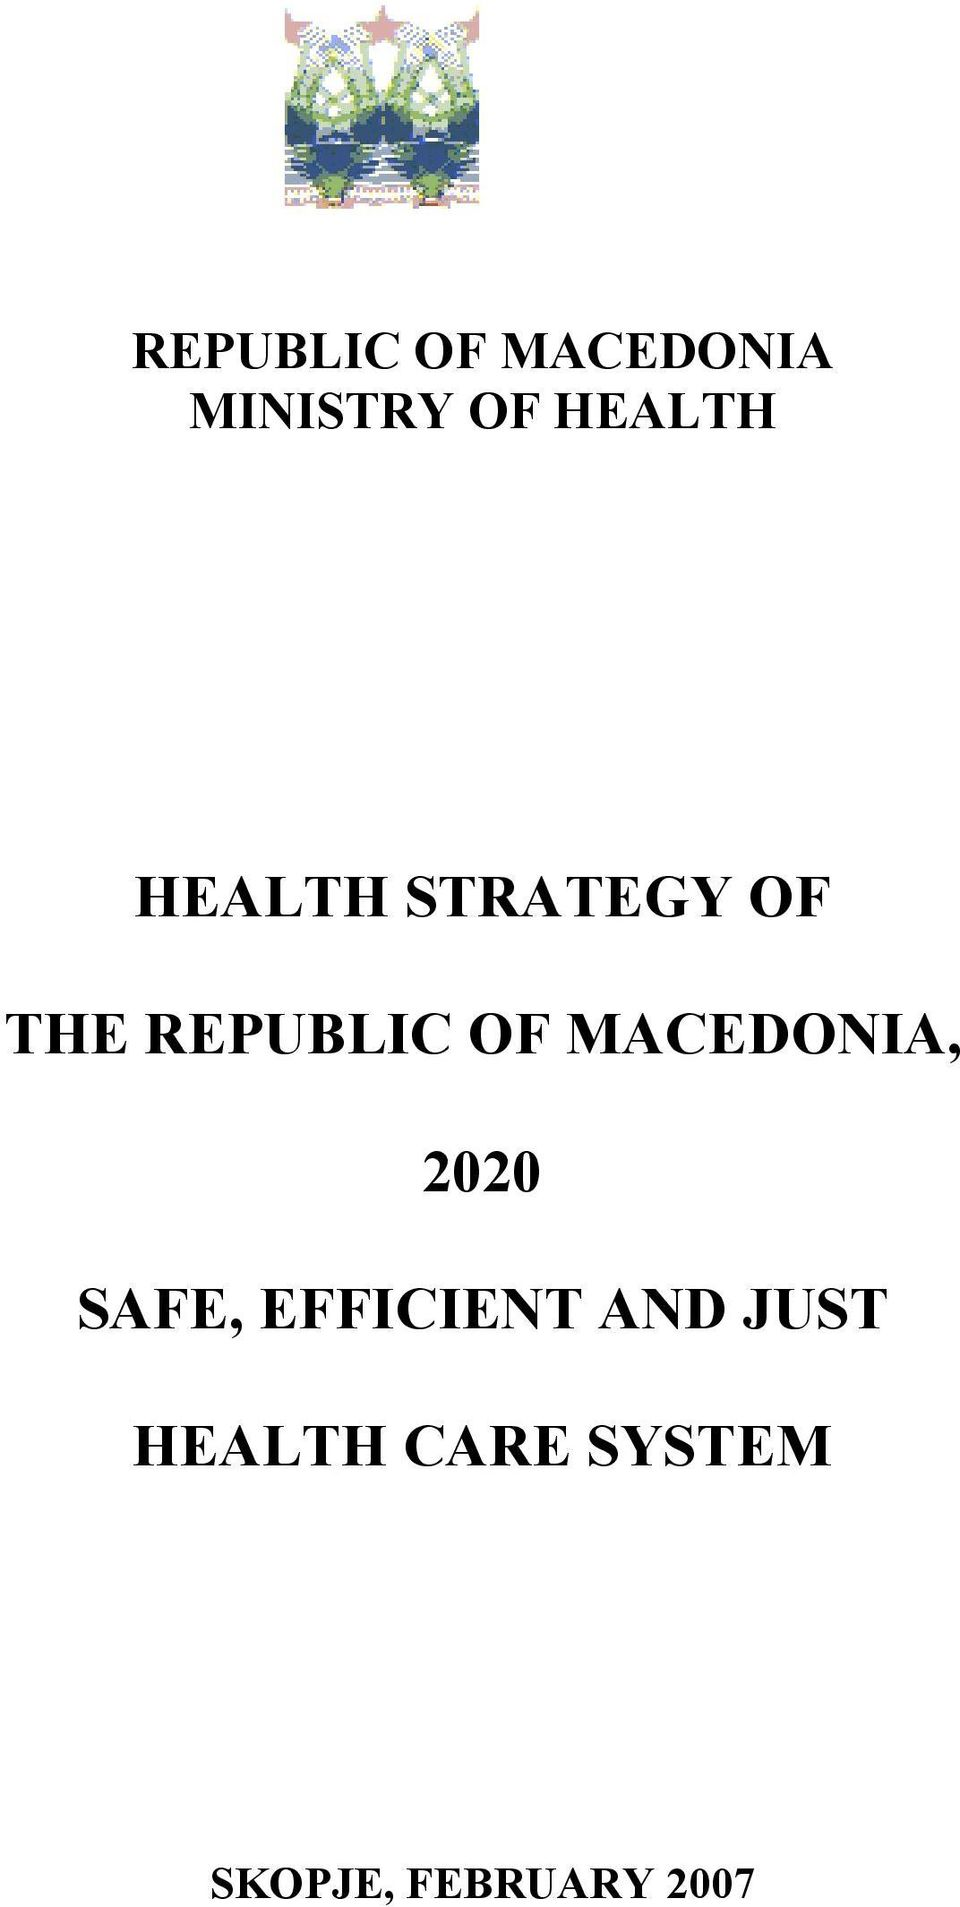 OF MACEDONIA, 2020 SAFE, EFFICIENT AND